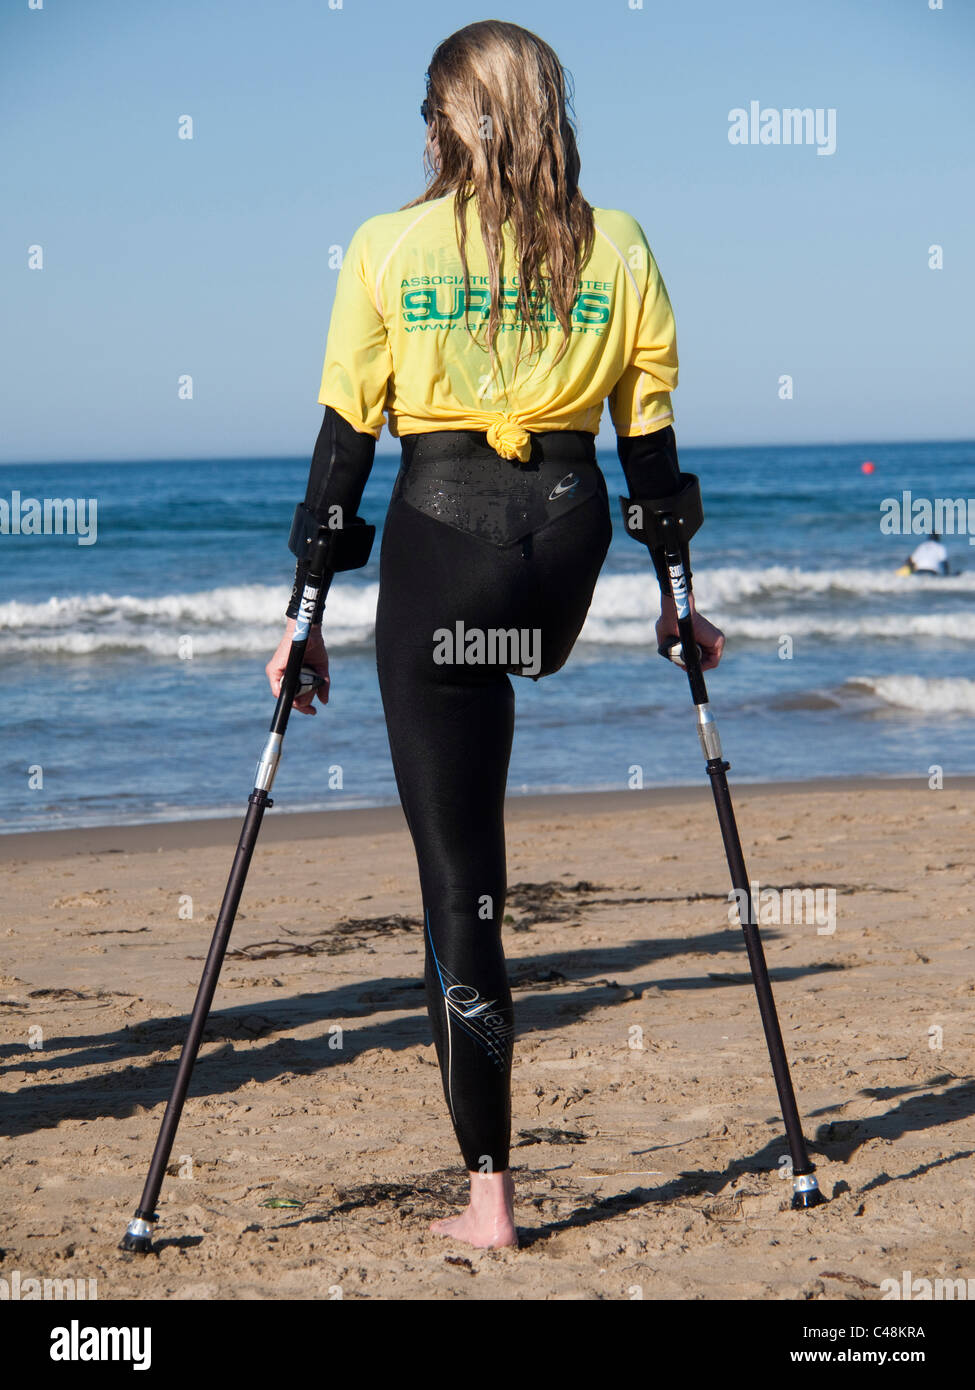 A woman who lost one leg to Chondrosarcoma, a cartilage-based tumor, watches other surfers during a surf clinic. - Stock Image